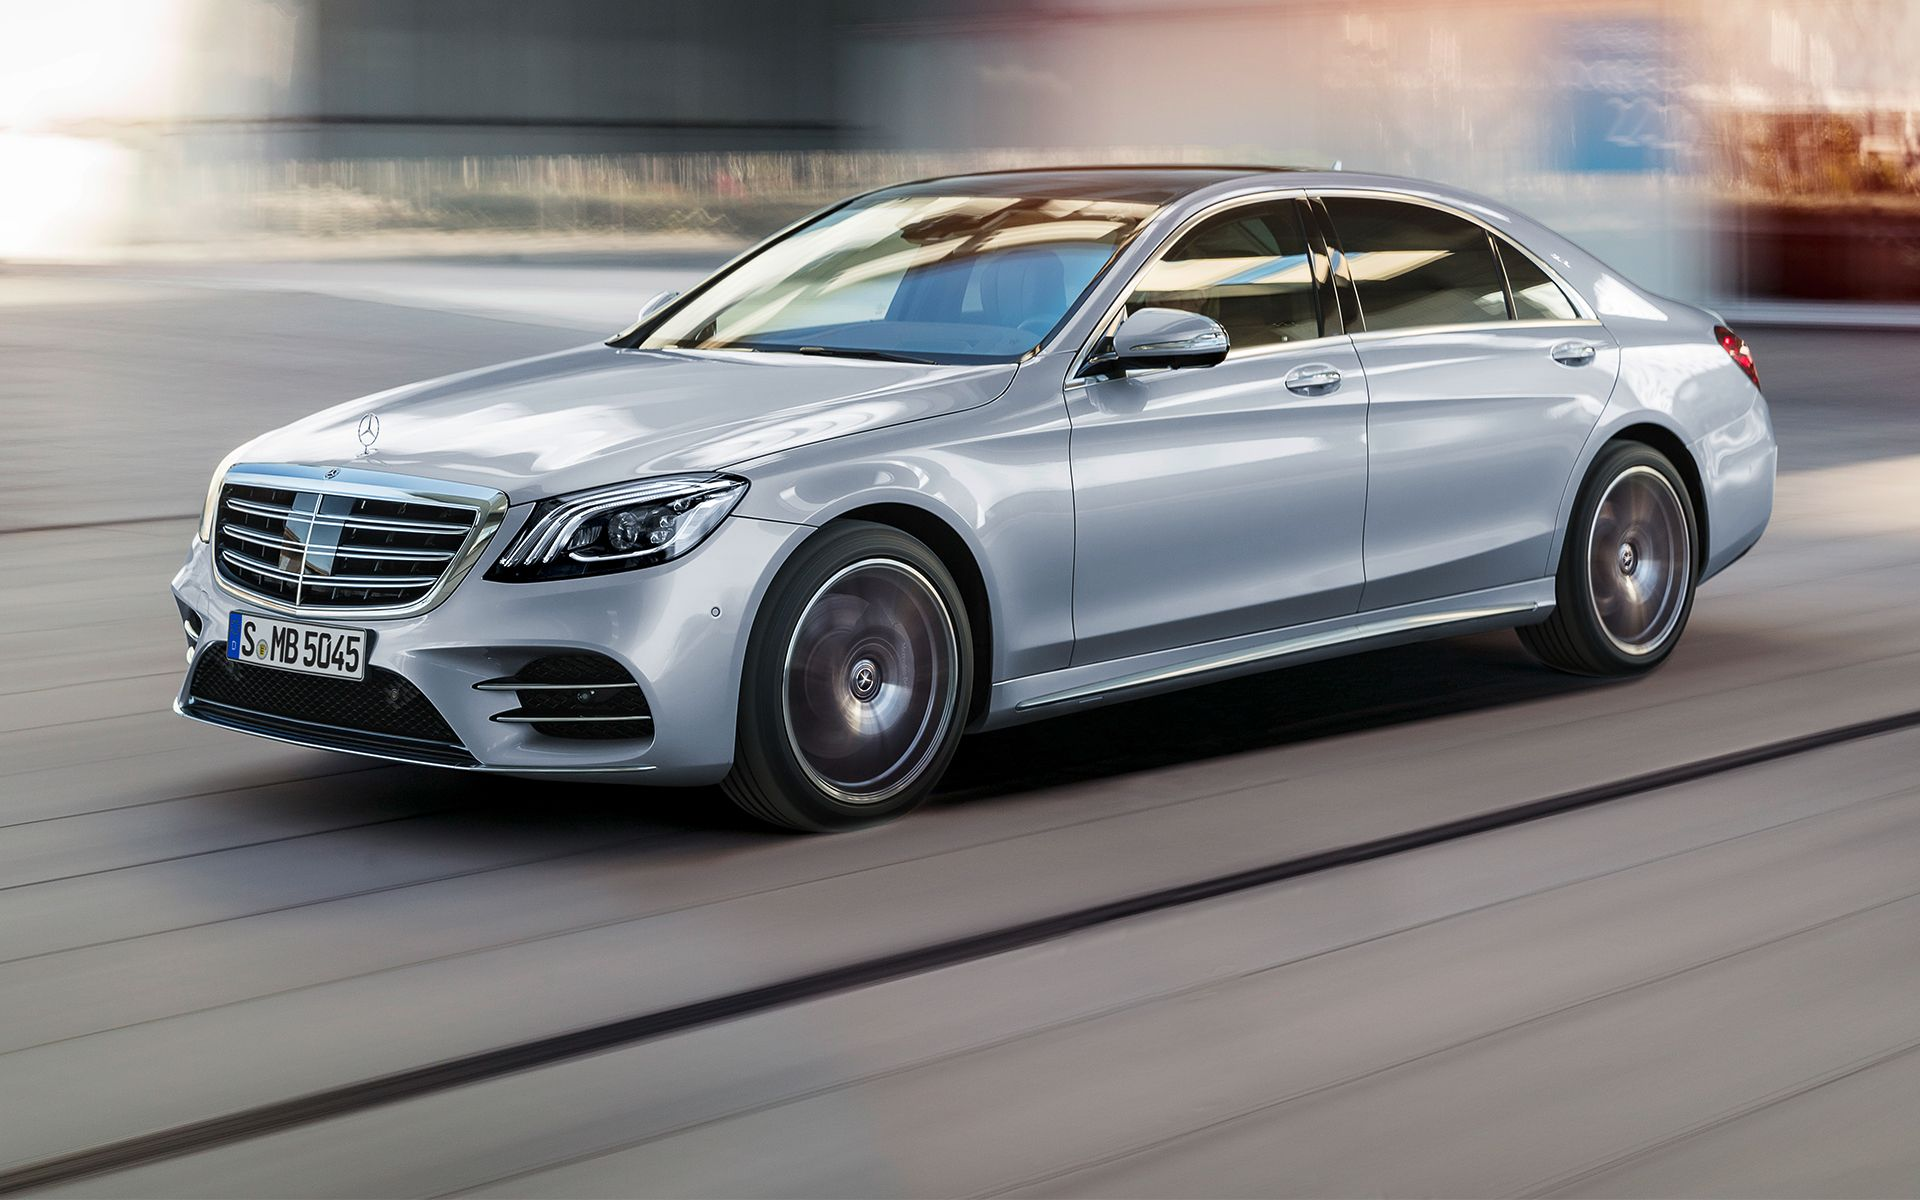 5 Things To Know About The New Mercedes-Benz S-Class